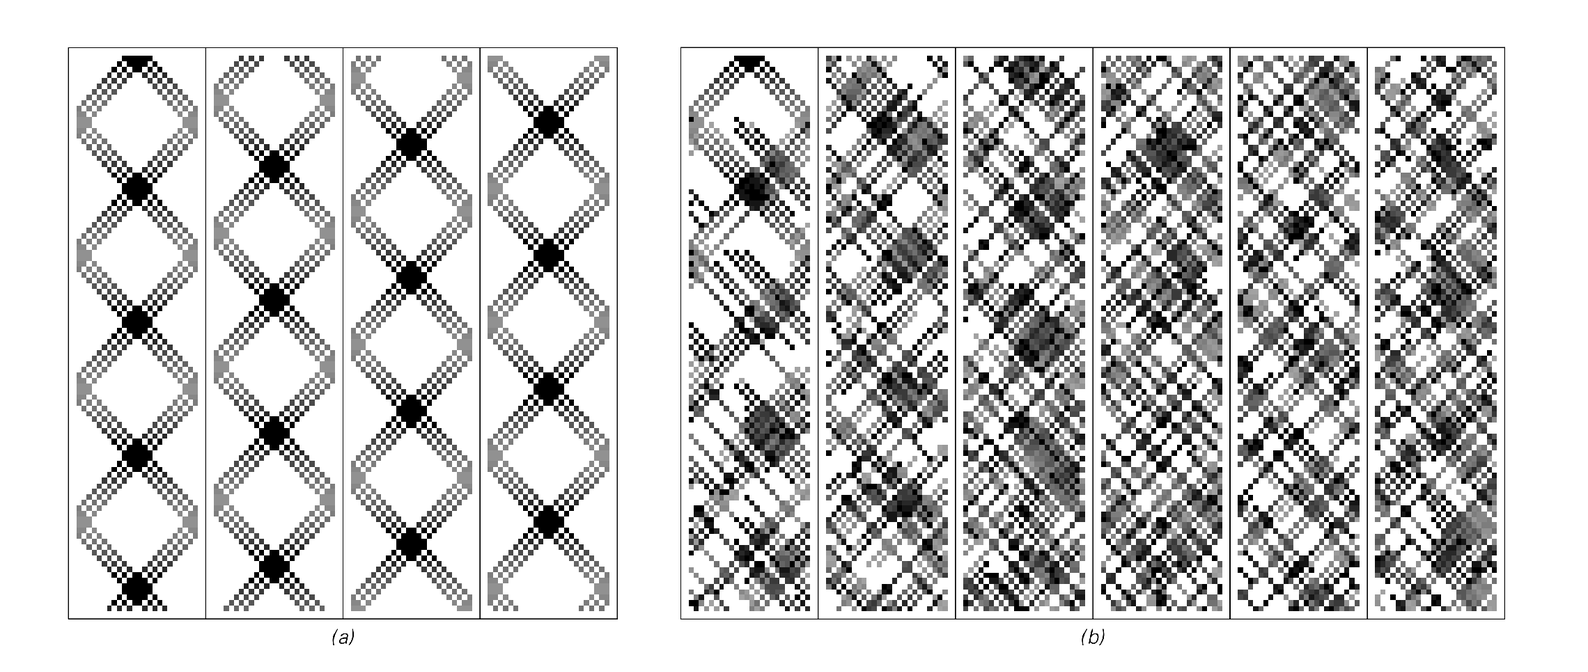 Time histories of cellular automata from facing page